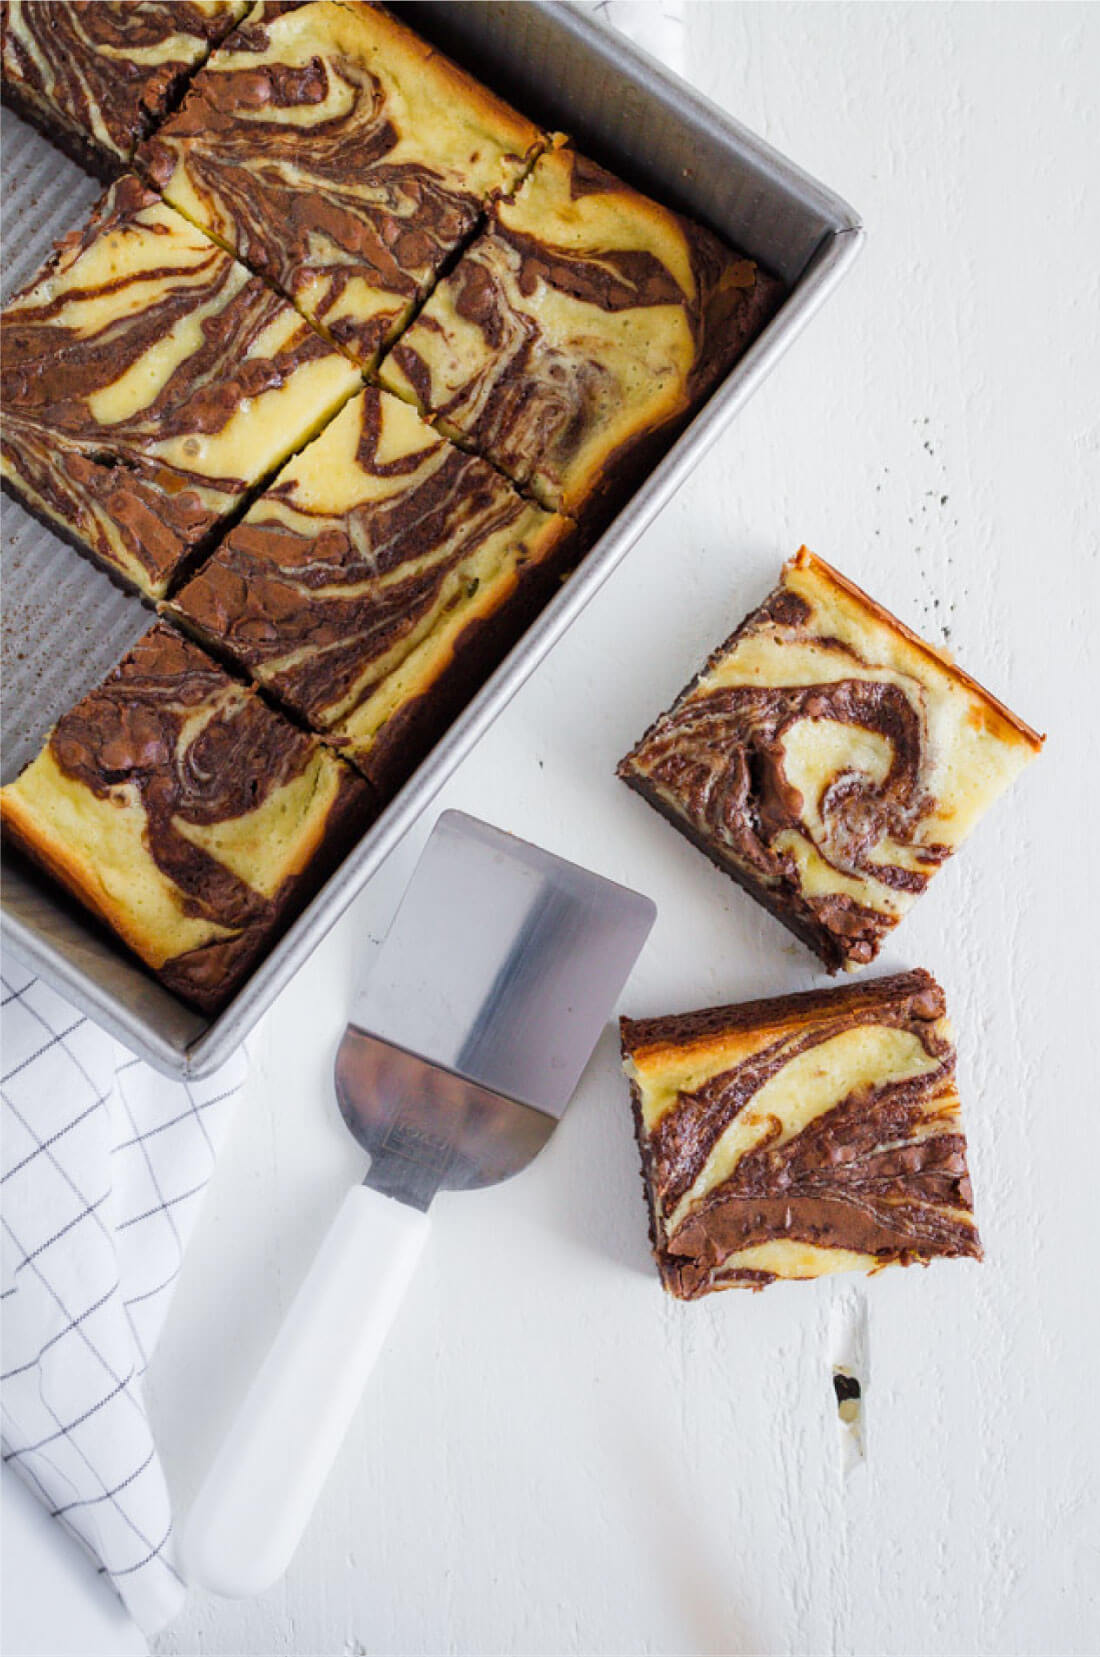 Cheesecake Brownies - they are delicious and simple and a fun take on regular brownies. Pan full of brownies.